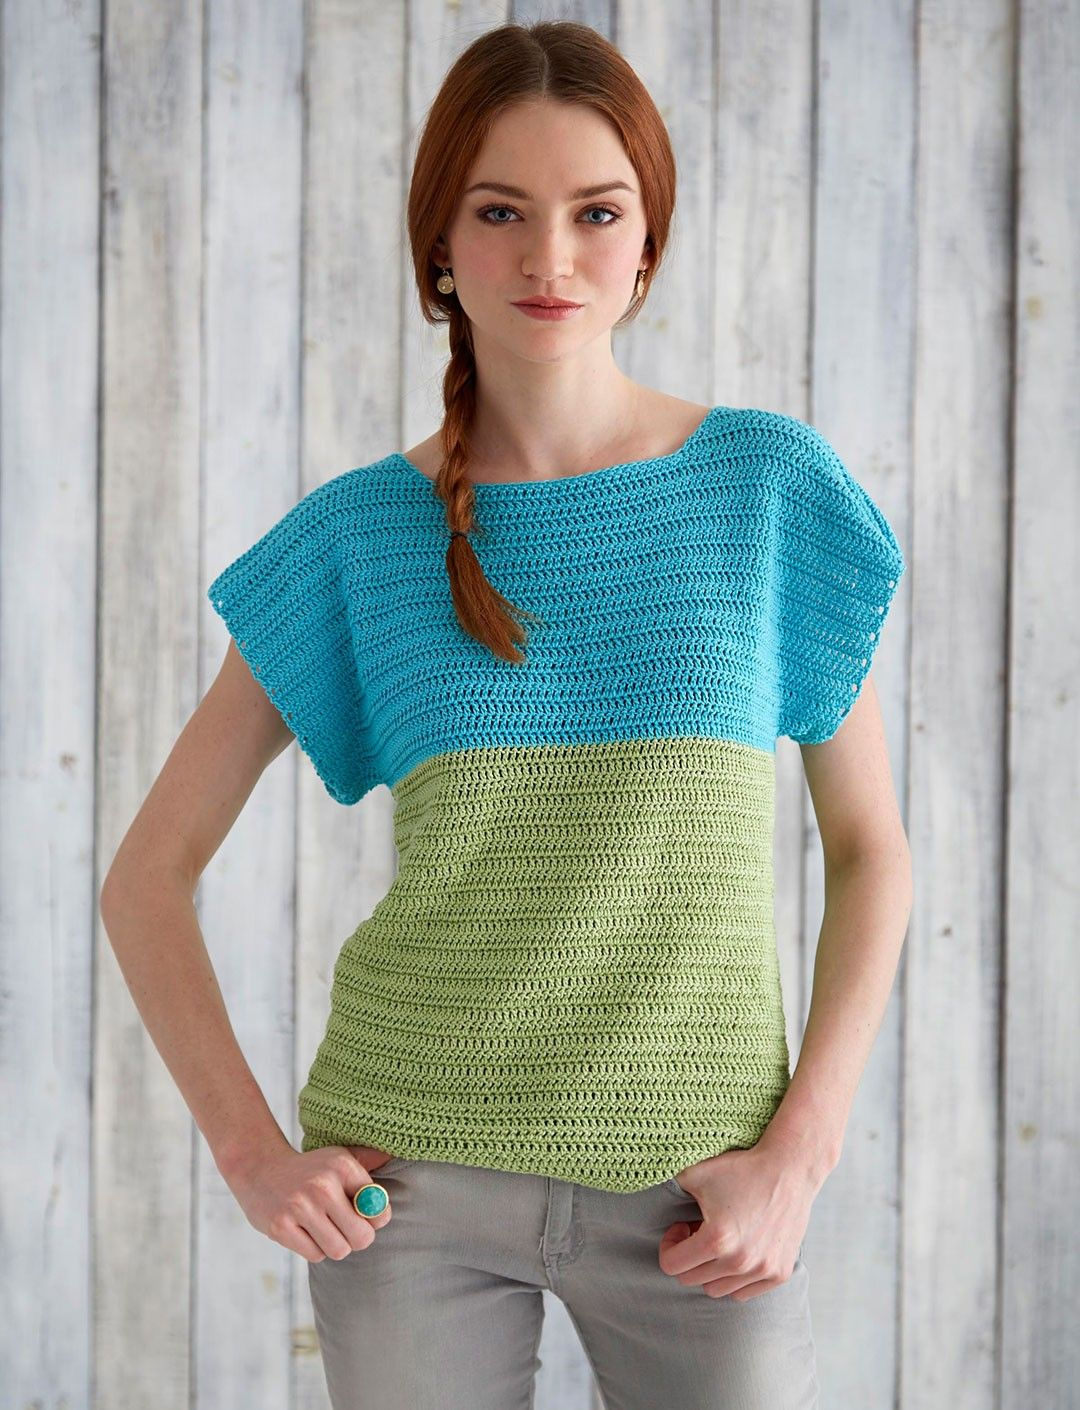 Free Pattern for crochet Colorblock Top - Patons Grace ...